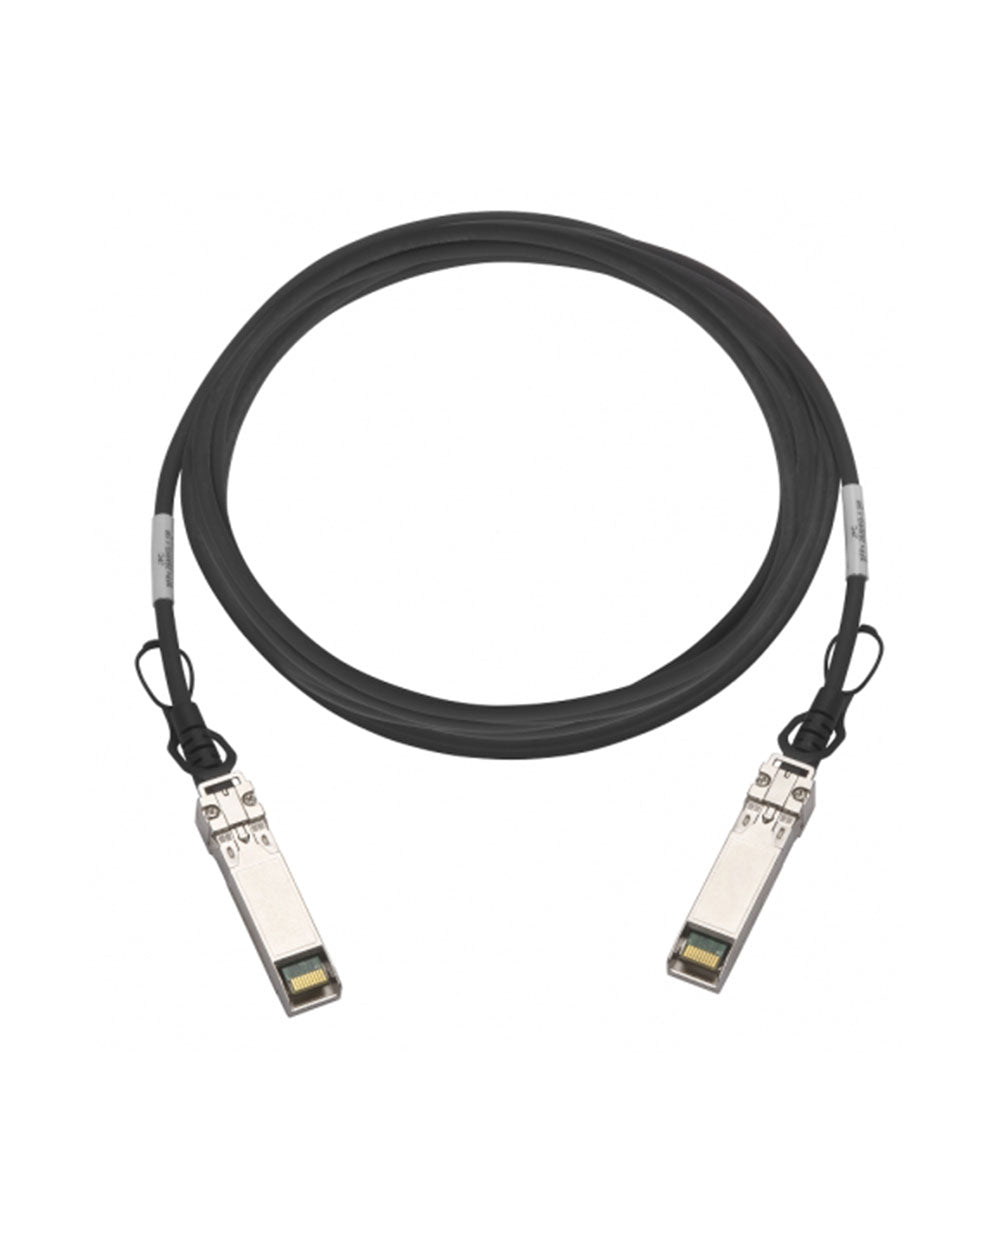 QNAP SFP+ 10GbE twinaxial direct attach cable, 5.0M